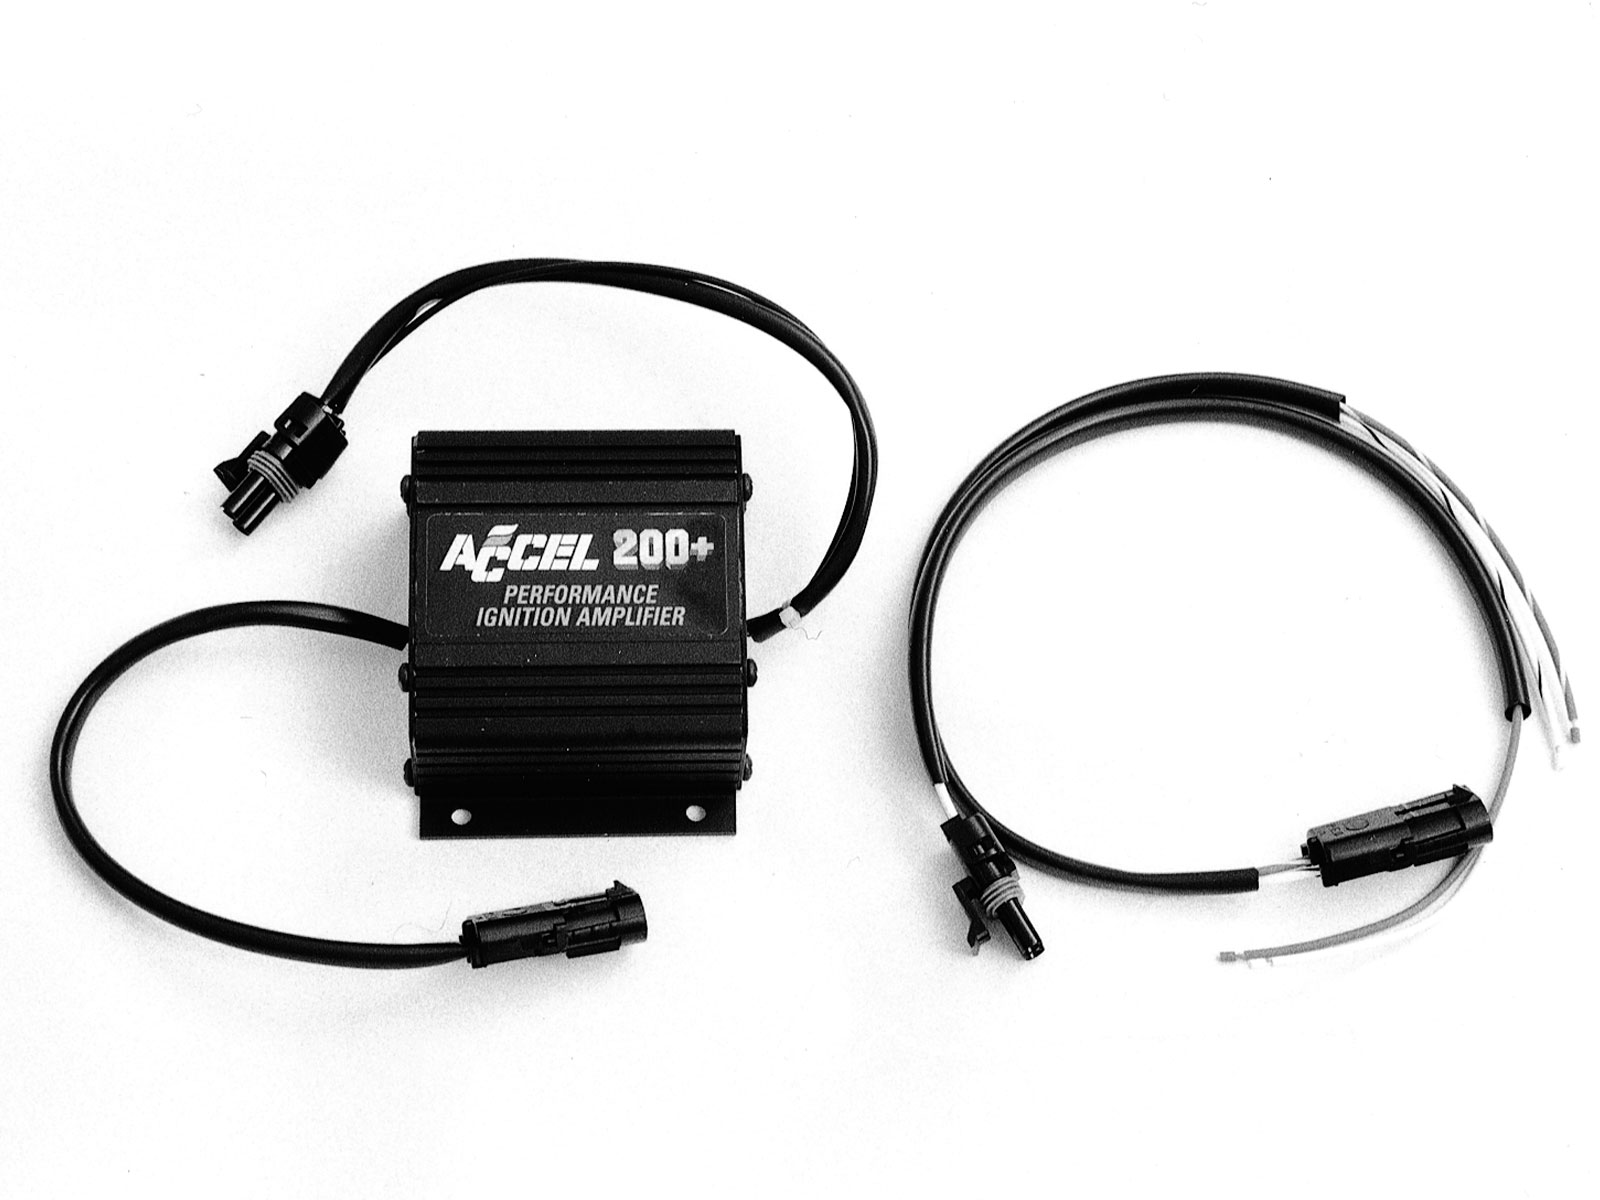 hight resolution of ccrp 9811 01 o ignition box comparison accel 200